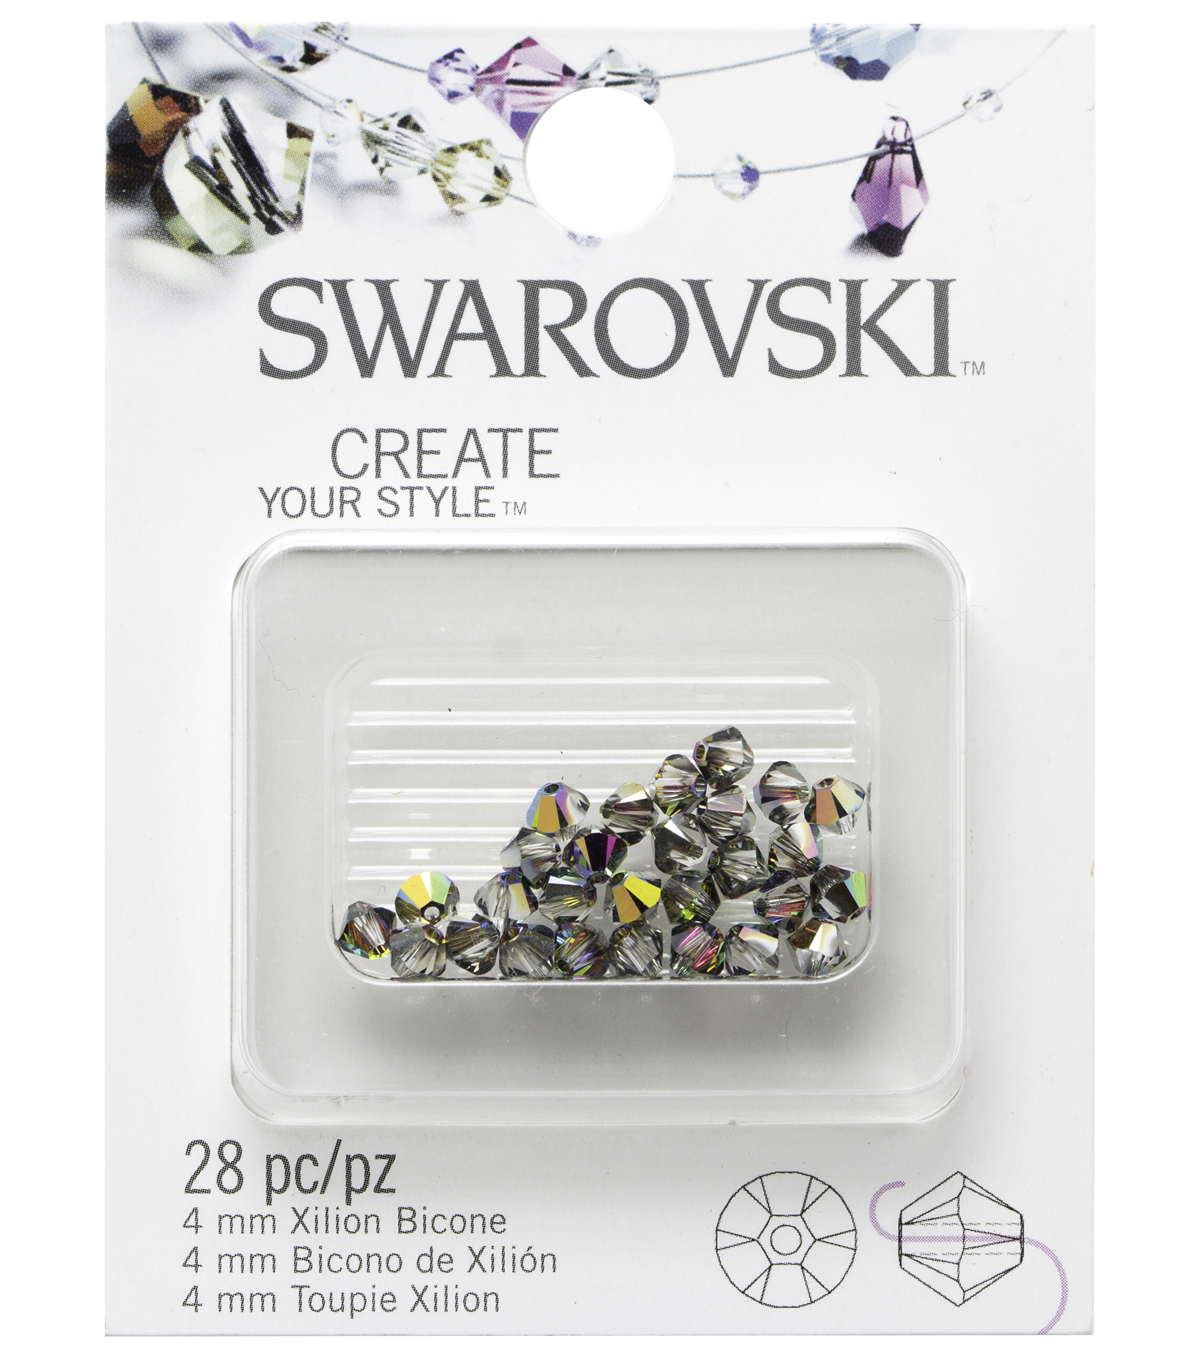 Swarovski Create Your Style 28 pk 4mm Bicone Vitrail Beads